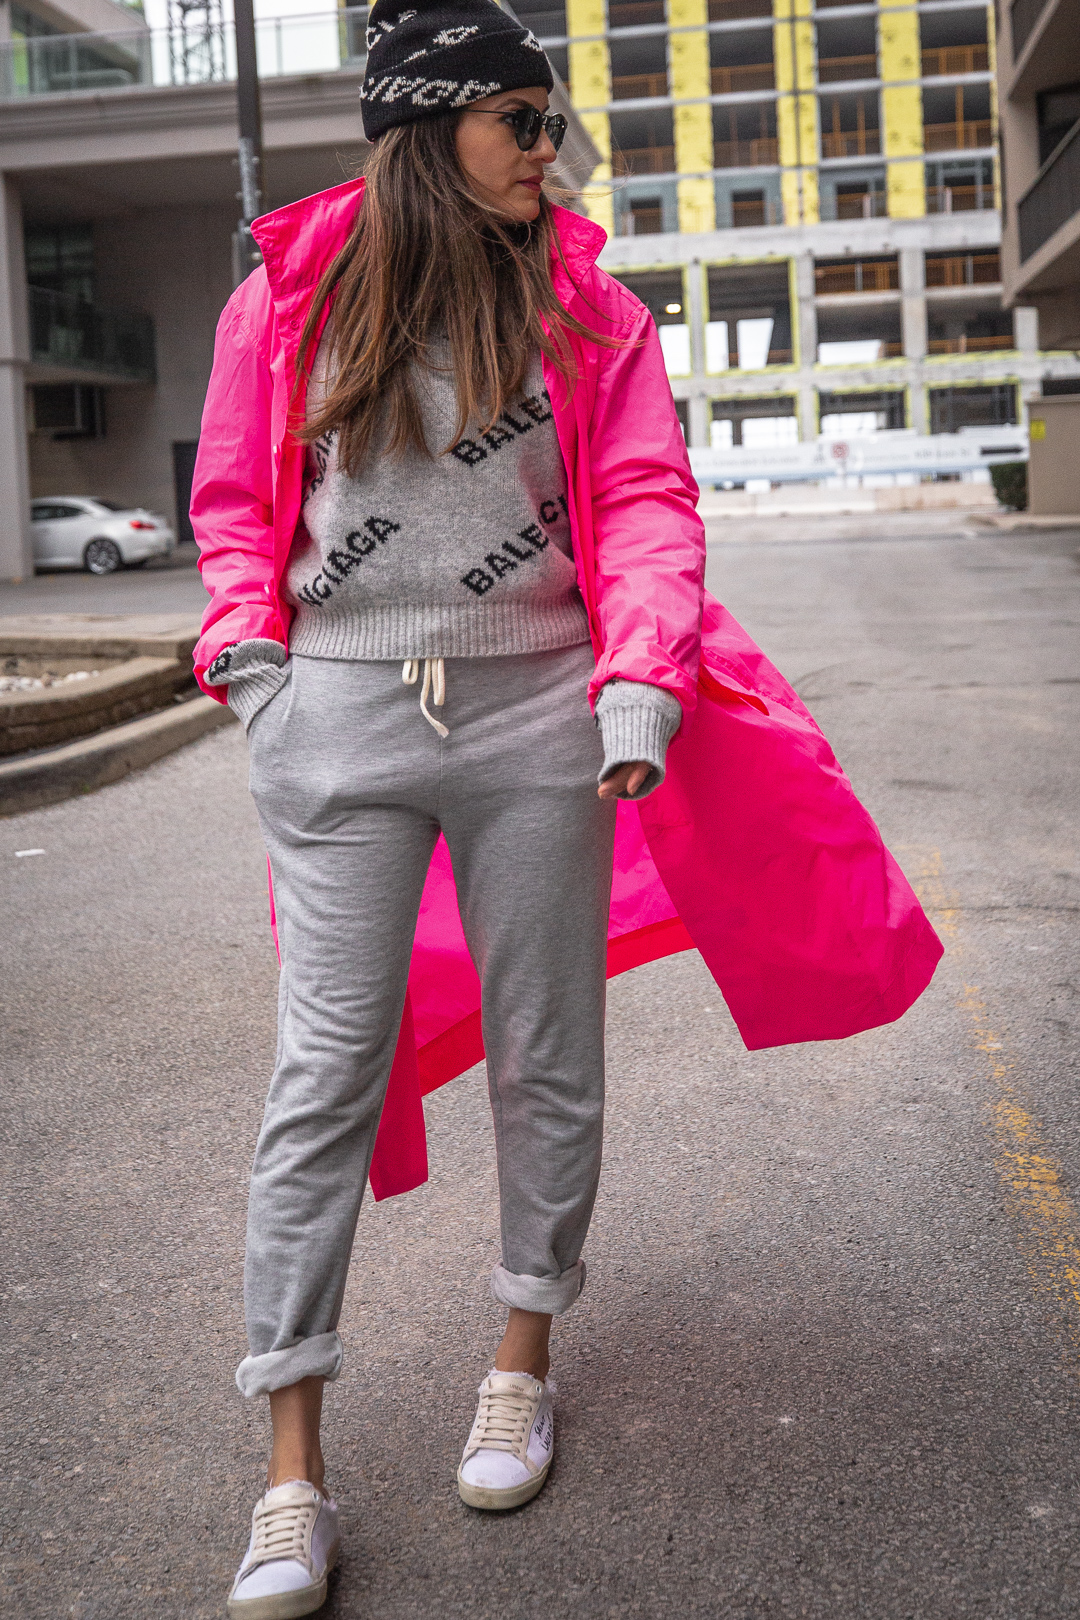 Nathalie Martin - Opening Ceremony pink nylon trench, Saint Laurent white canvas sneakers, Balenciaga logo beanie and cropped logo sweater, grey joggers, casual street style, woahstyle.com_5443.jpg